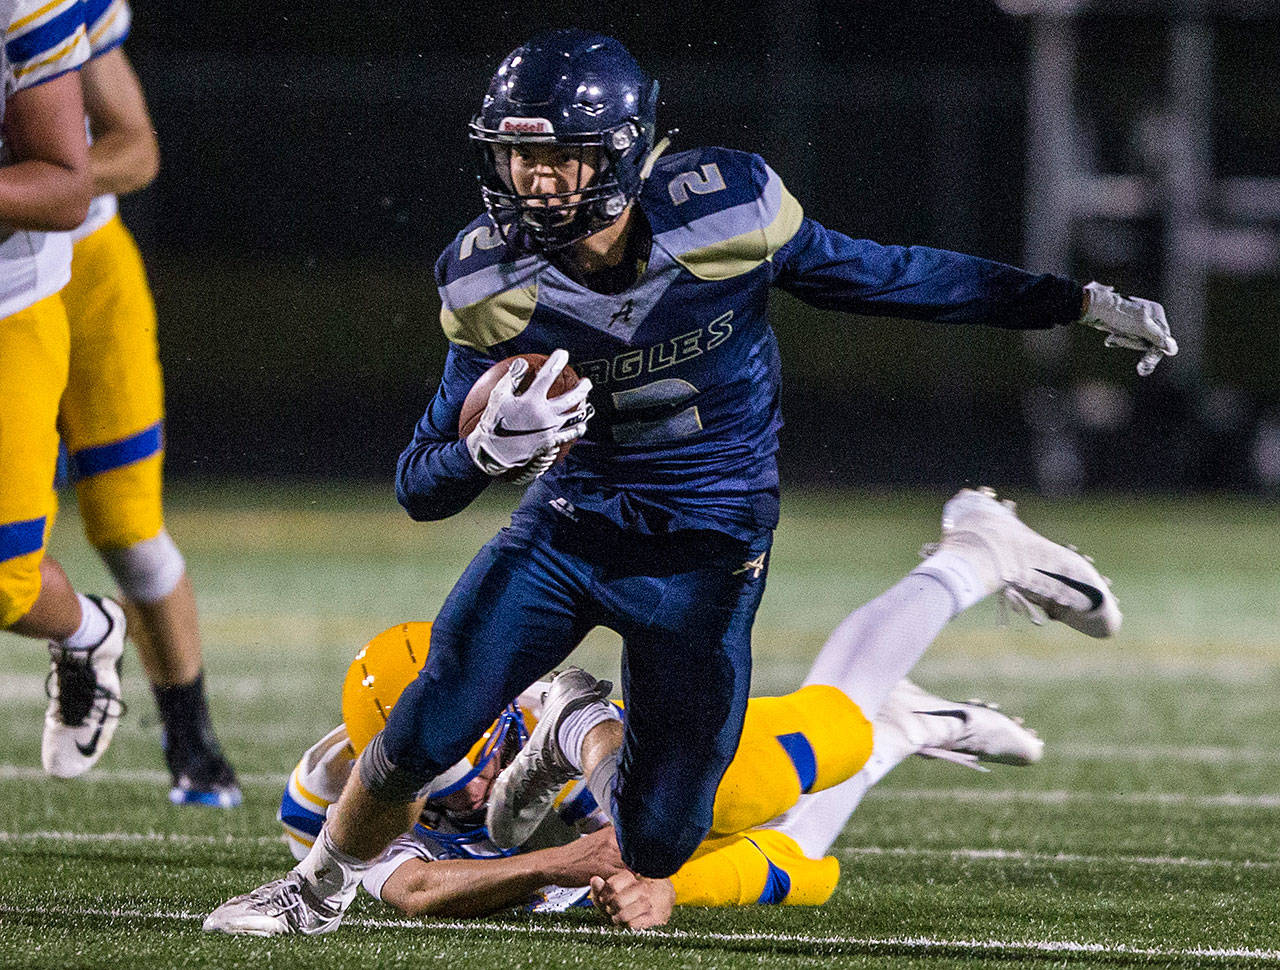 Wide receiver Bryce Petersen and Arlington had a flair for the dramatic last season, including another thriller against Oak Harbor. (Olivia Vanni / The Herald)